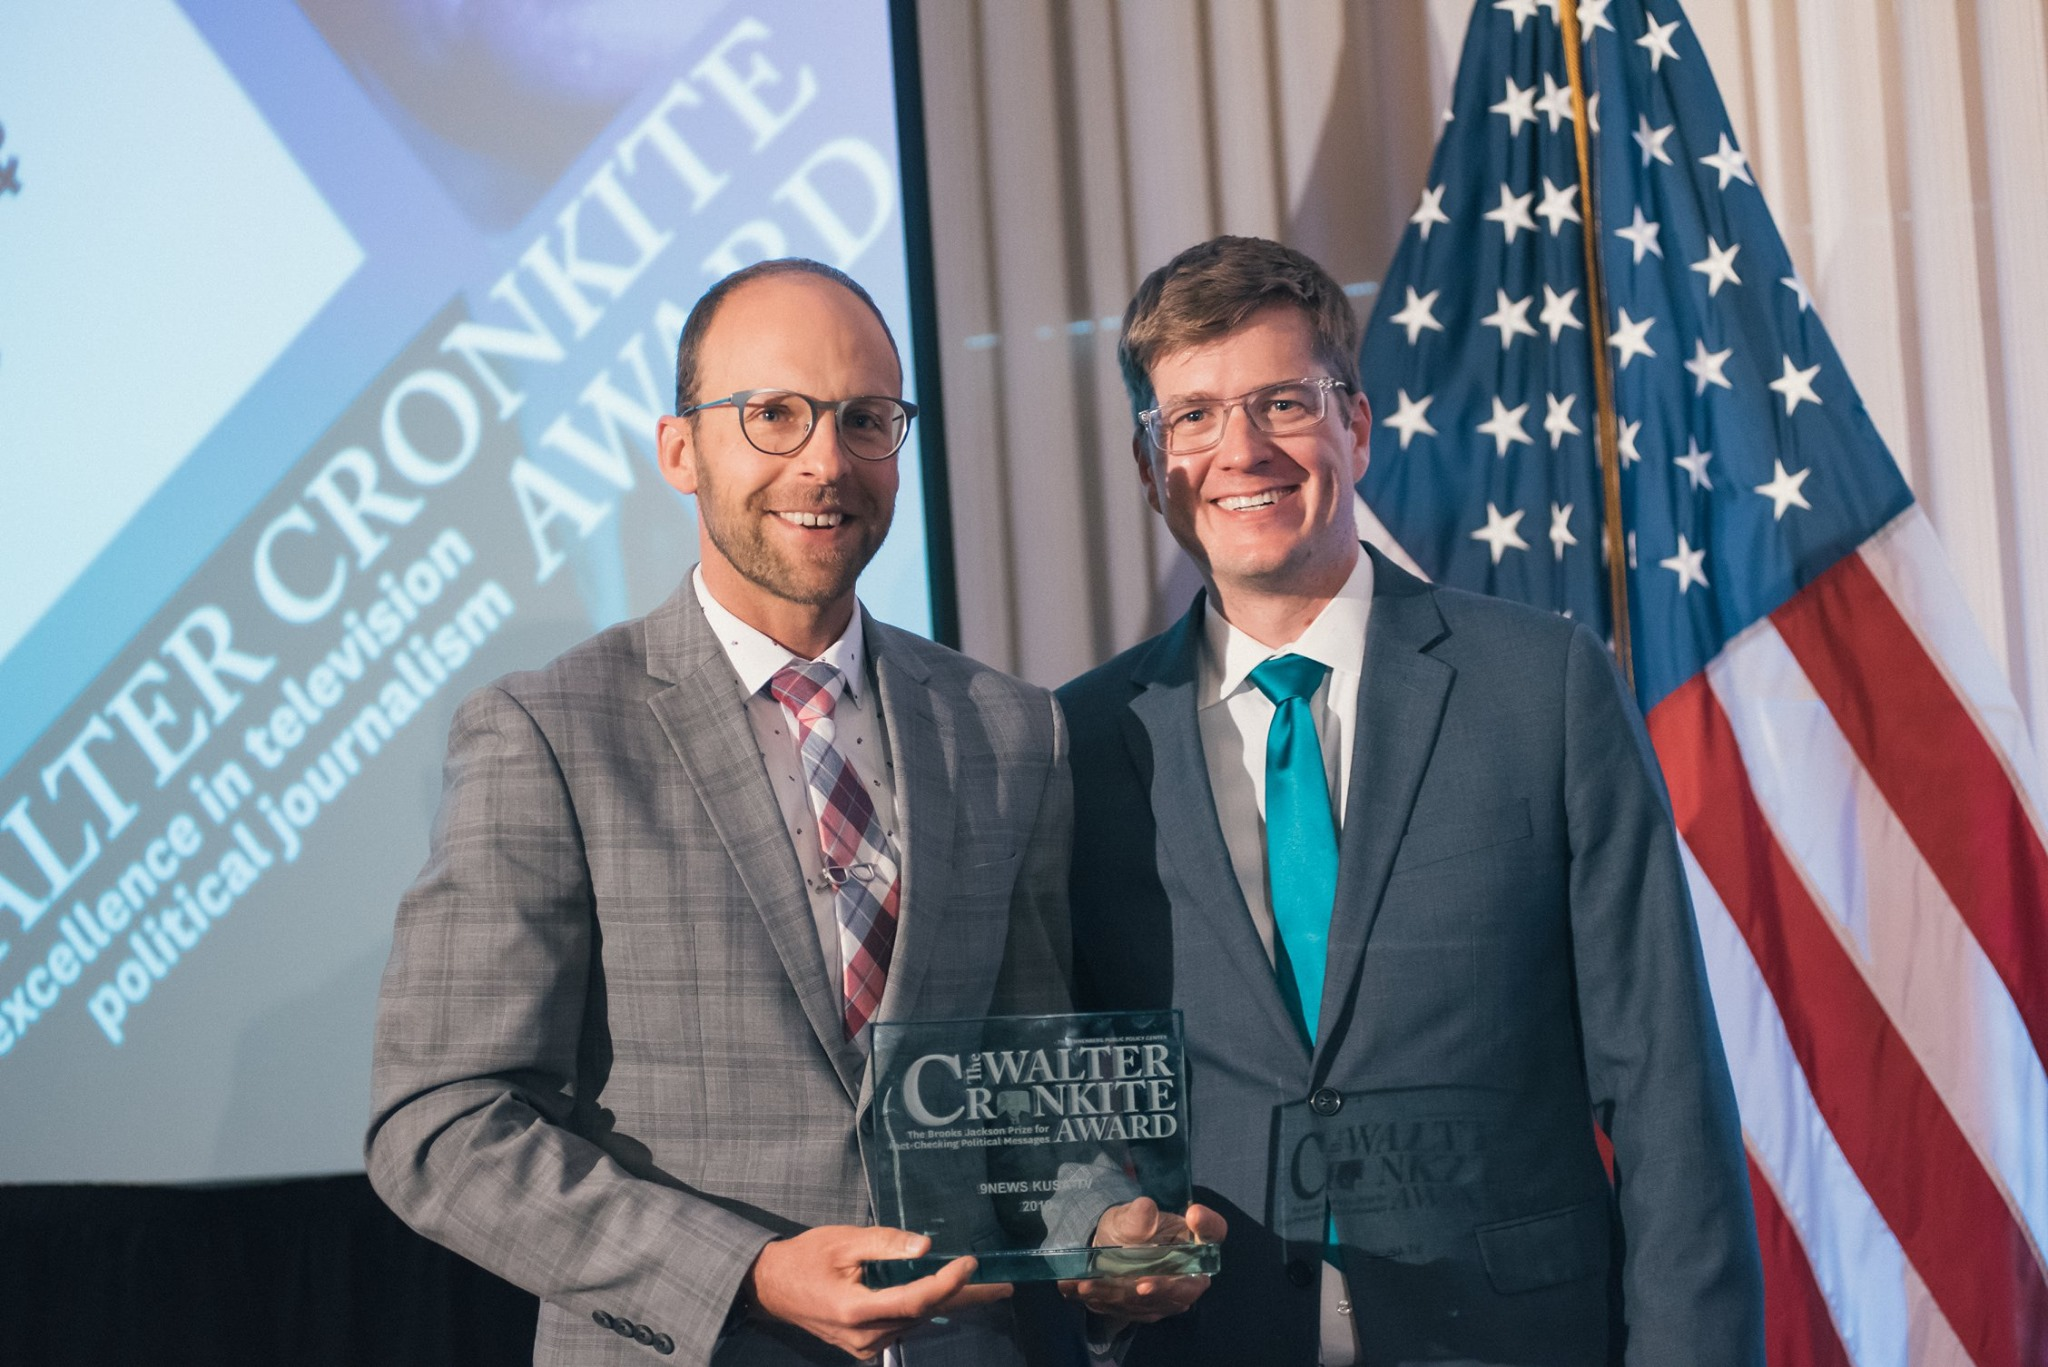 Marshall Zelinger (left) and Brandon Rittiman accepted the Jackson Prize for KUSA 9News. Photos courtesy of the National Press Club.